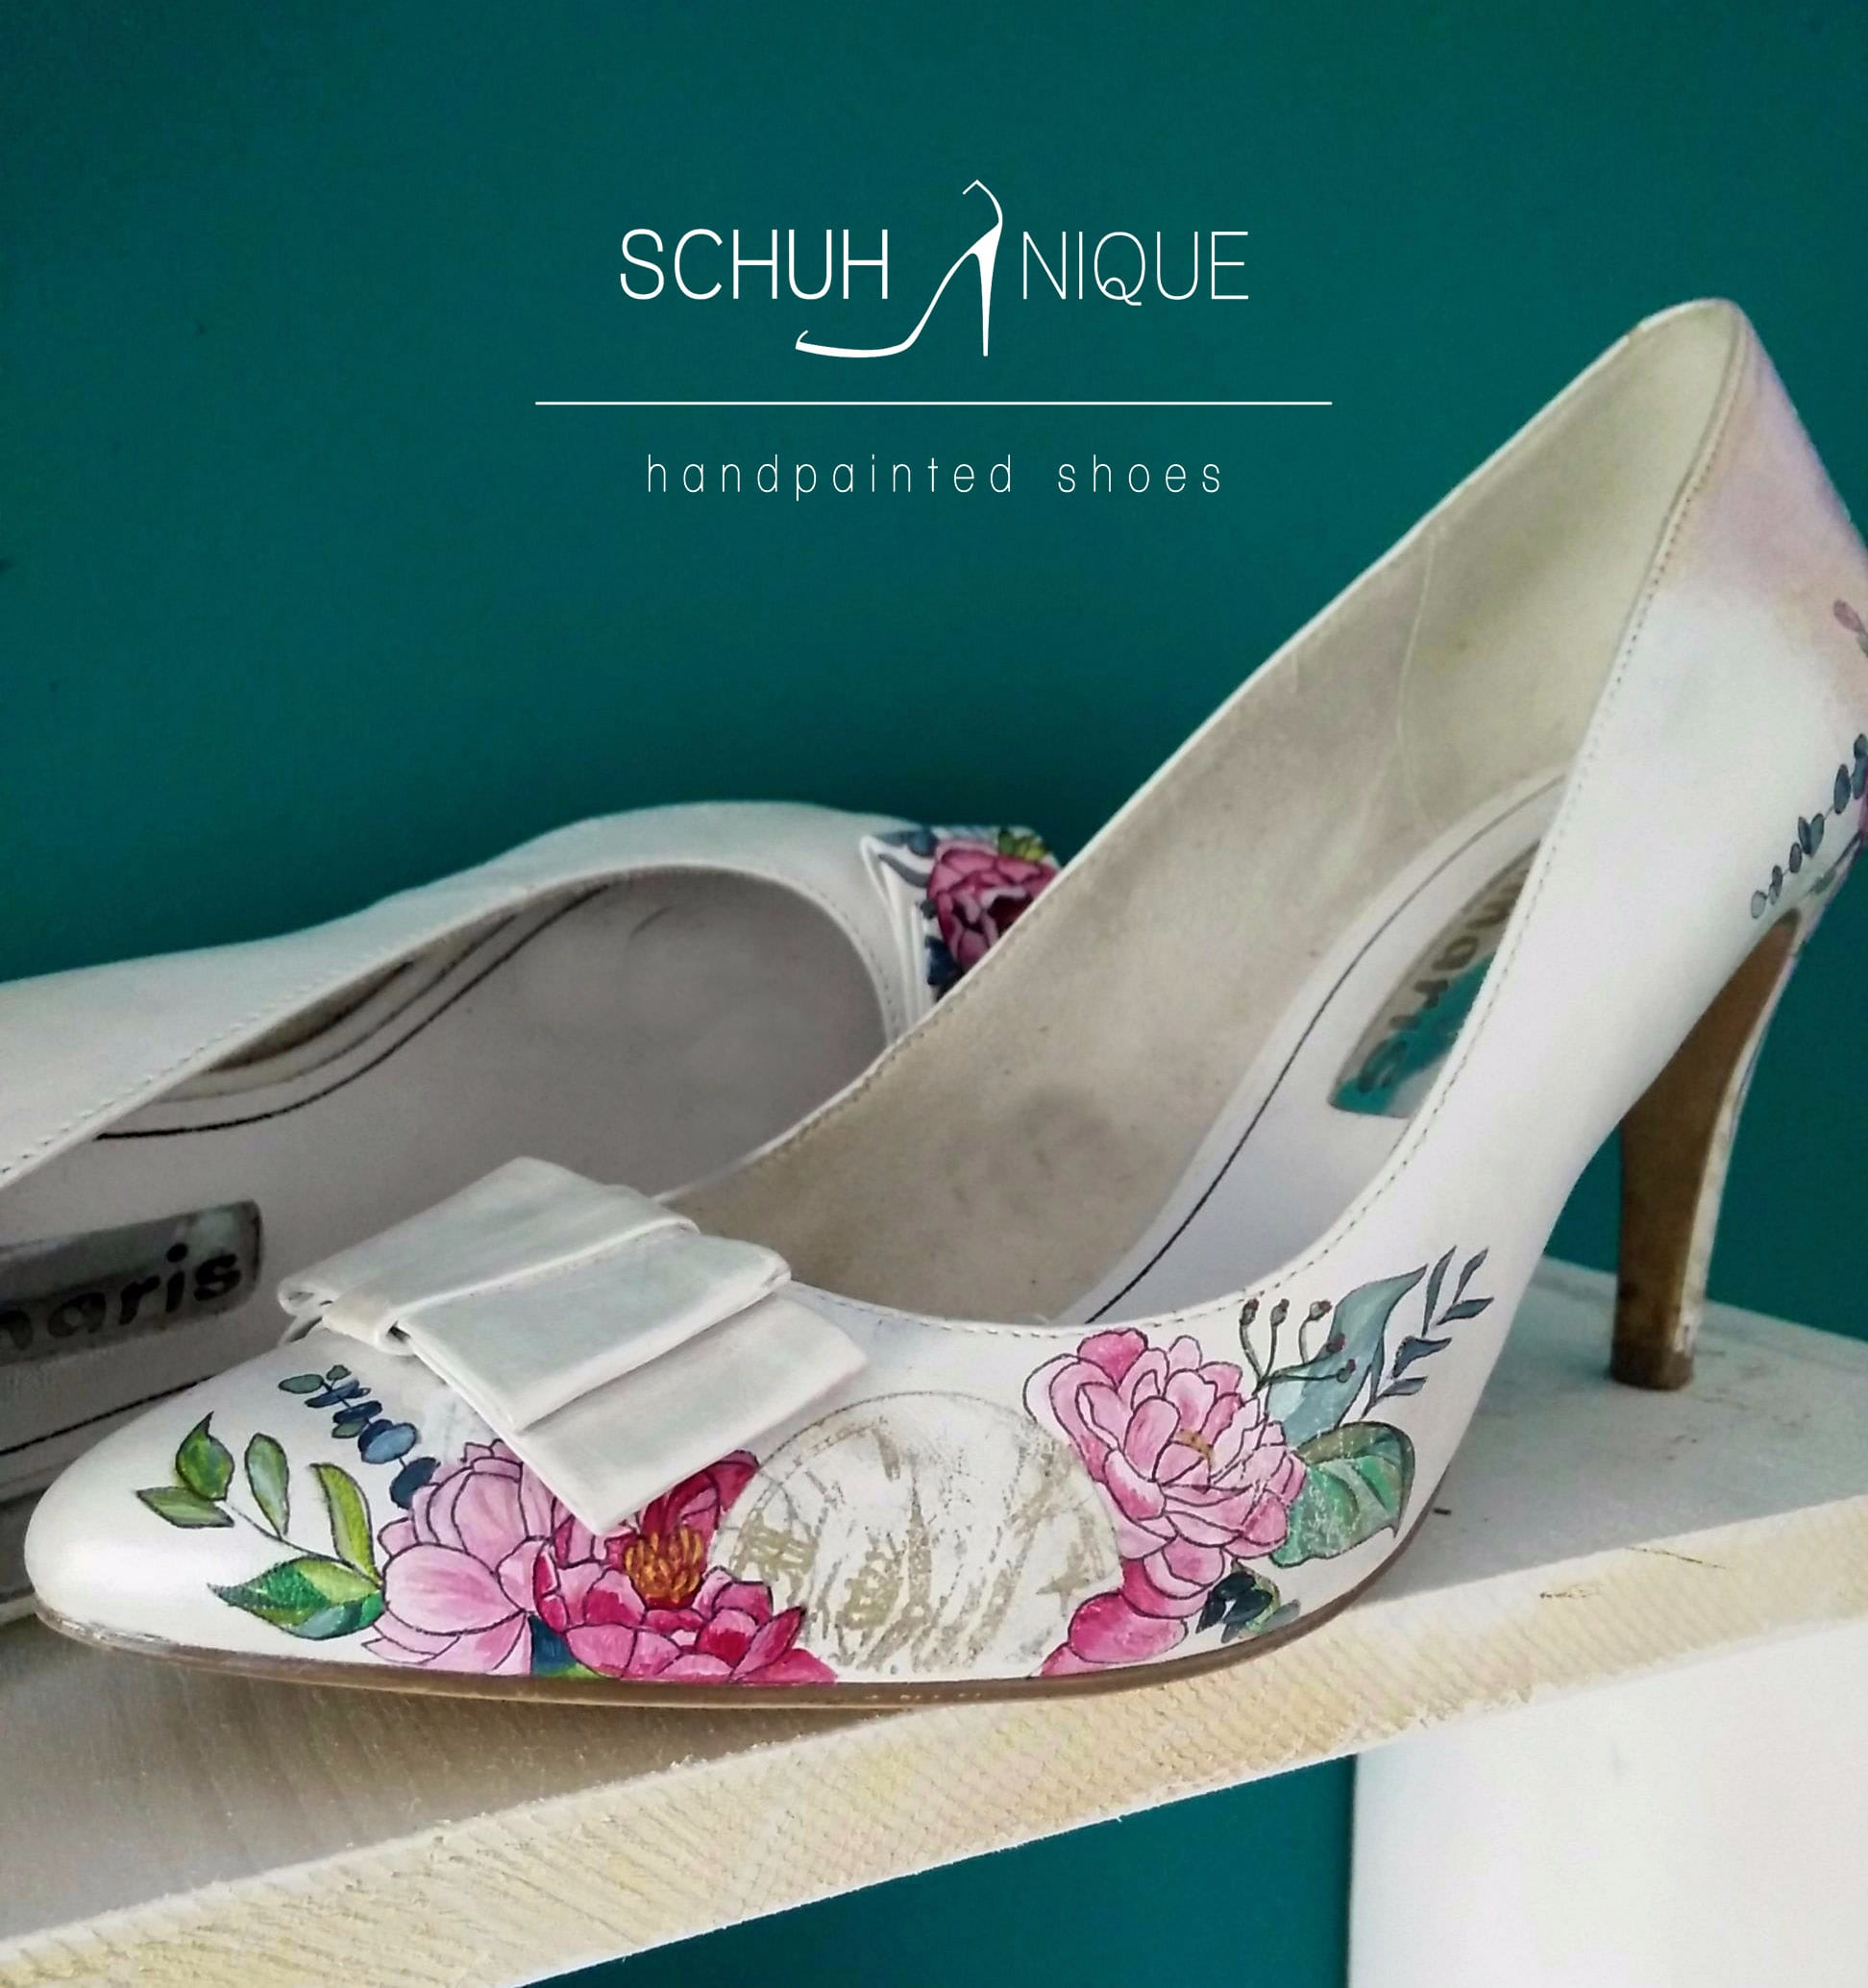 Wedding Dresses And Custom Handpainted Shoes Pairings - Shoes by Schunique